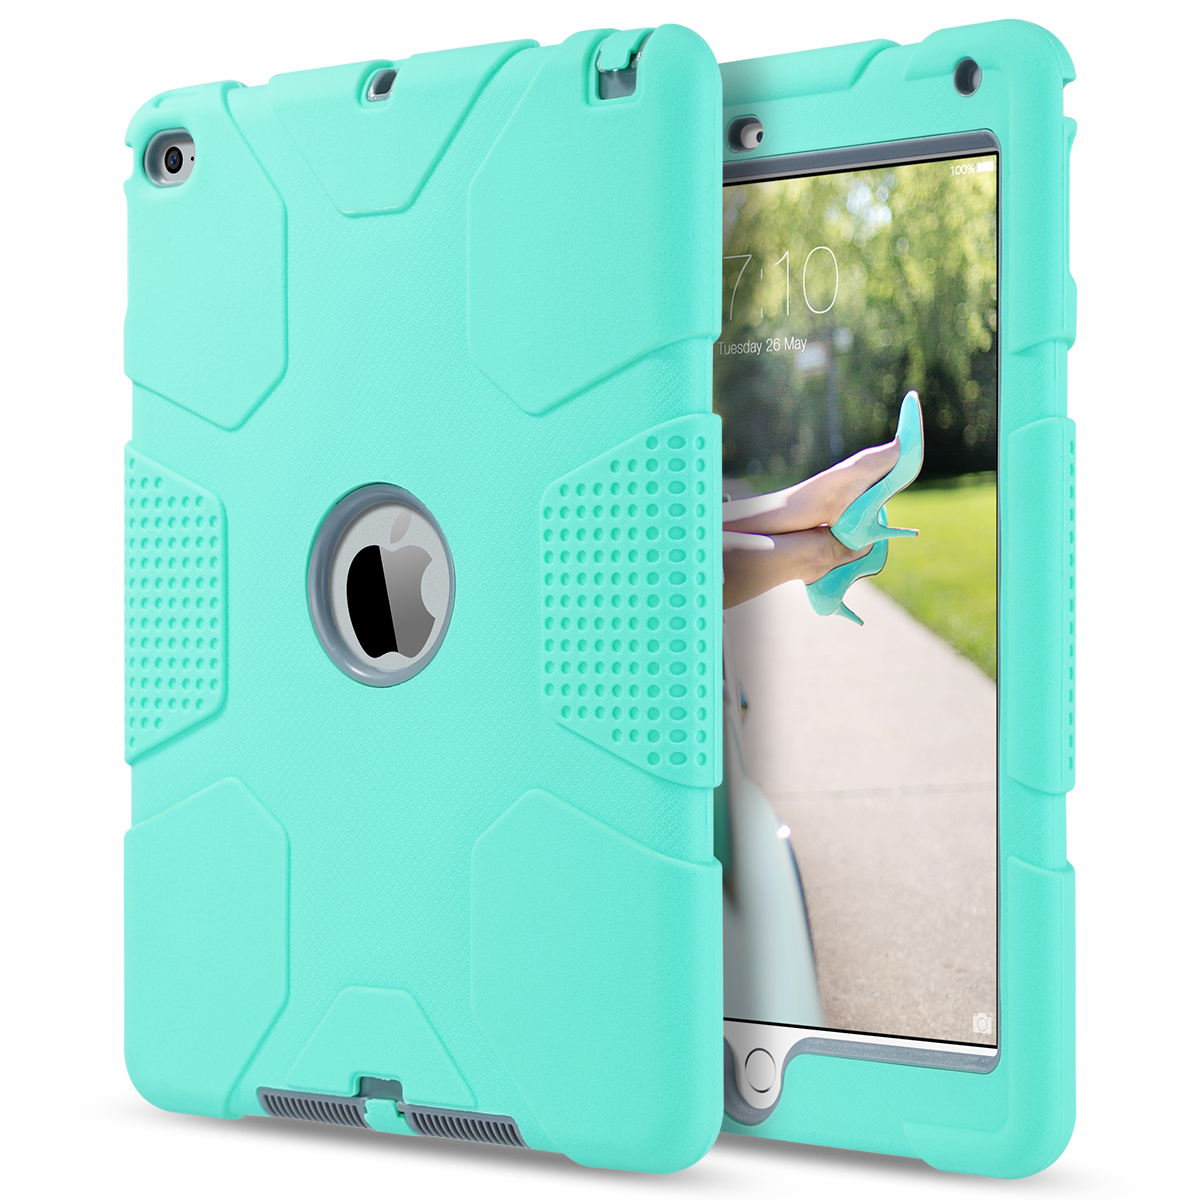 Shockproof-Heavy-Duty-Rubber-With-Hard-Stand-Case-Cover-For-Apple-iPad-Air-2 thumbnail 22